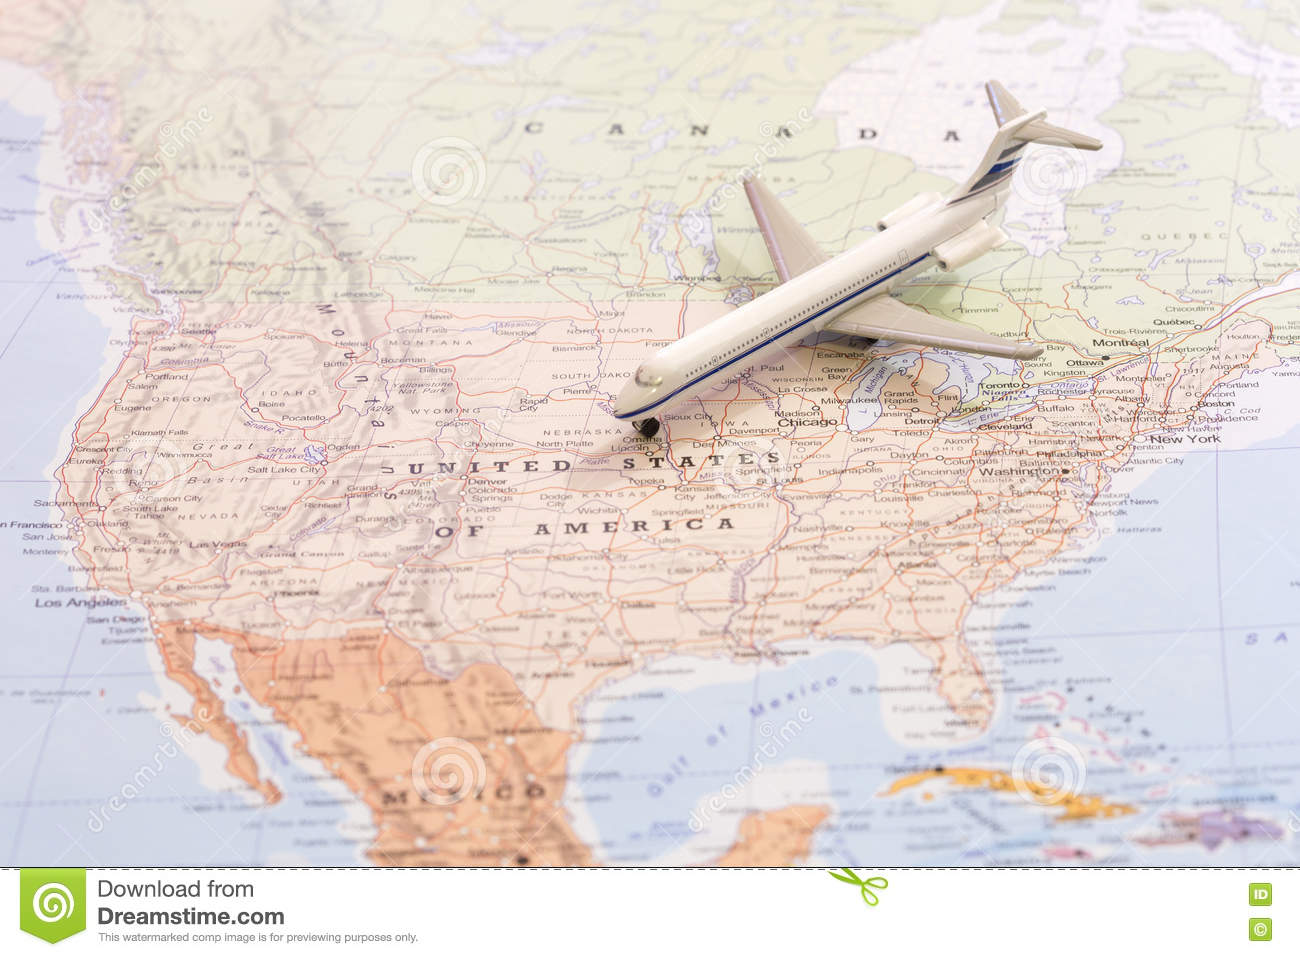 Miniature Of Passenger Airplane On A Map Travel Destination USA – Travel Map Of Usa